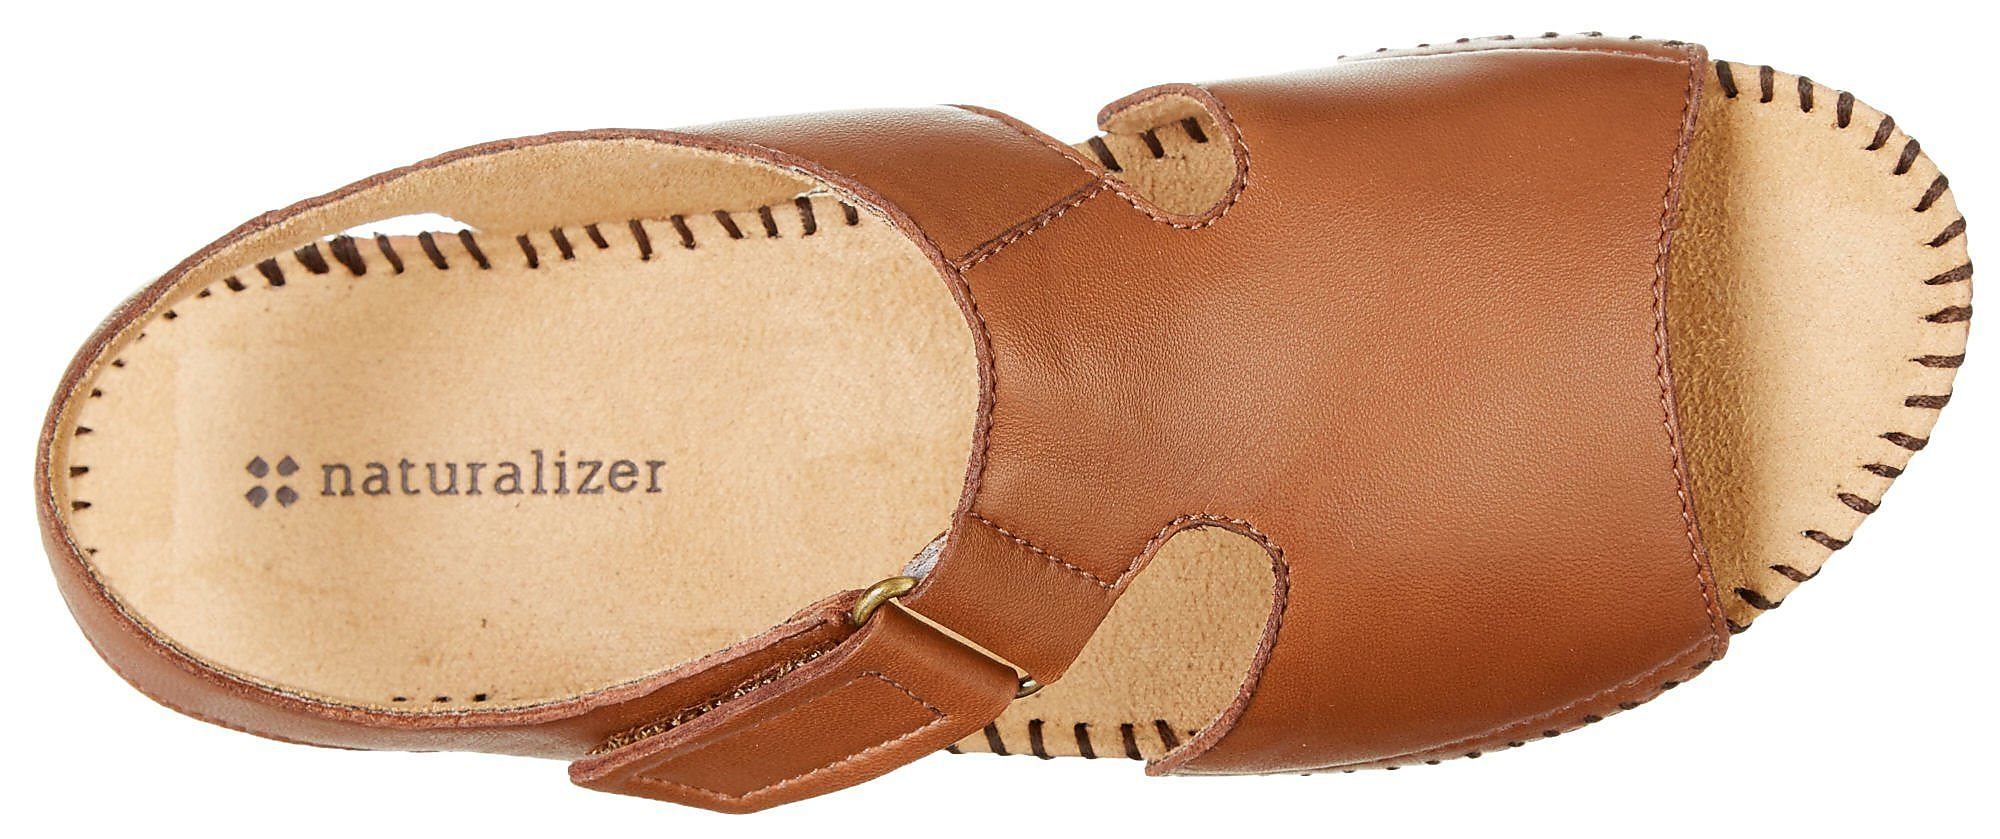 Naturalizer-Womens-Scout-II-Sandals thumbnail 18